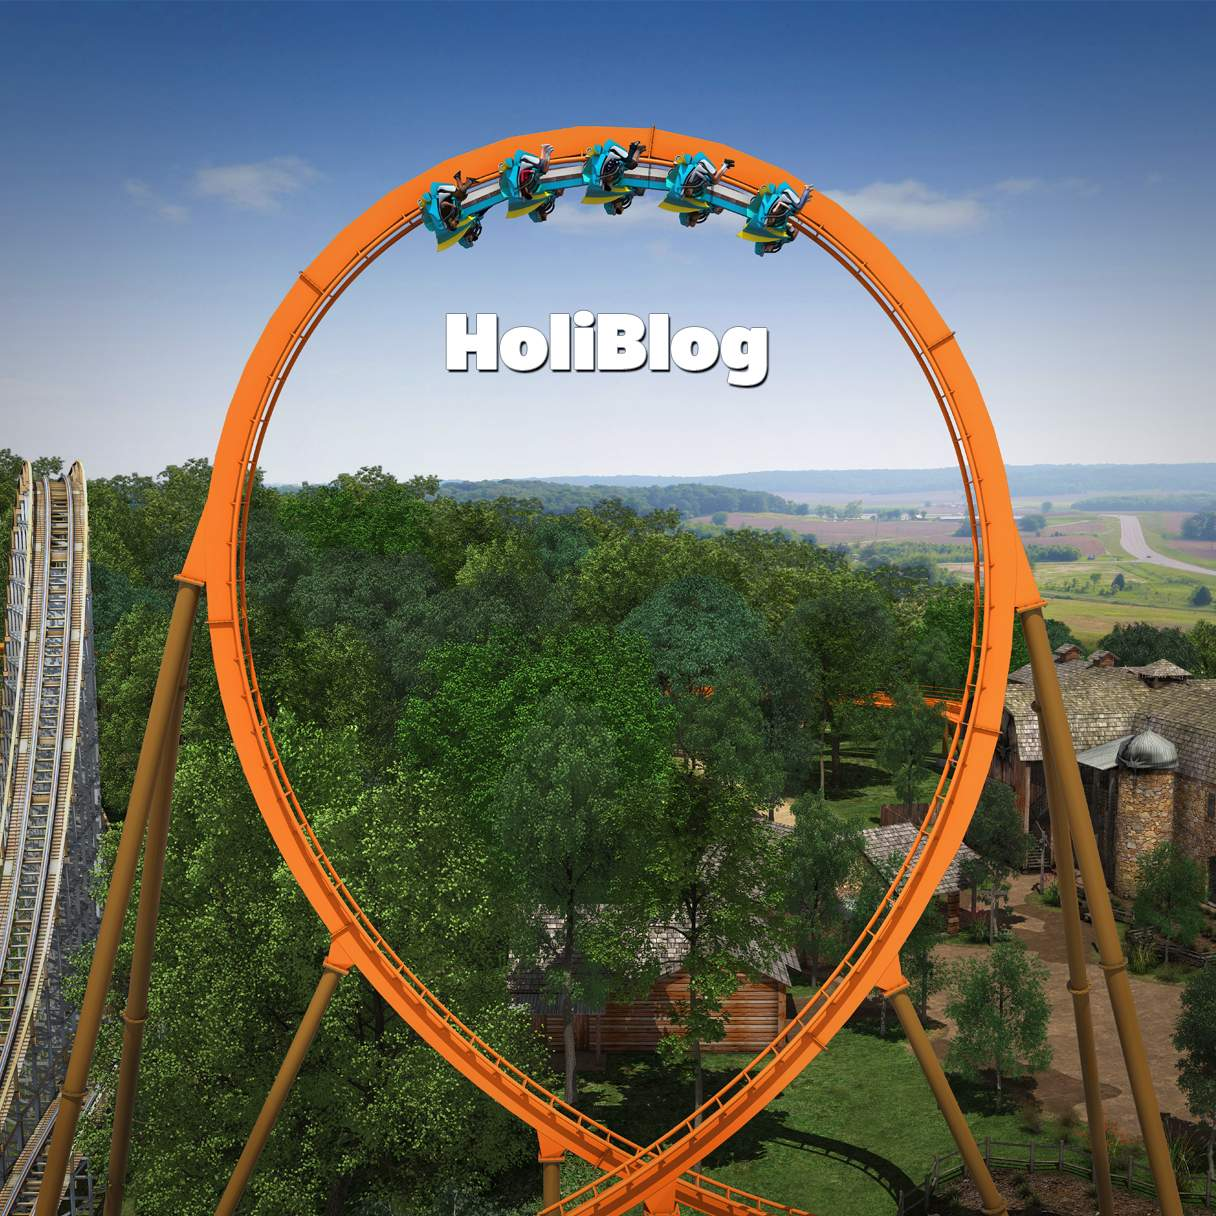 www.holidayworld.com